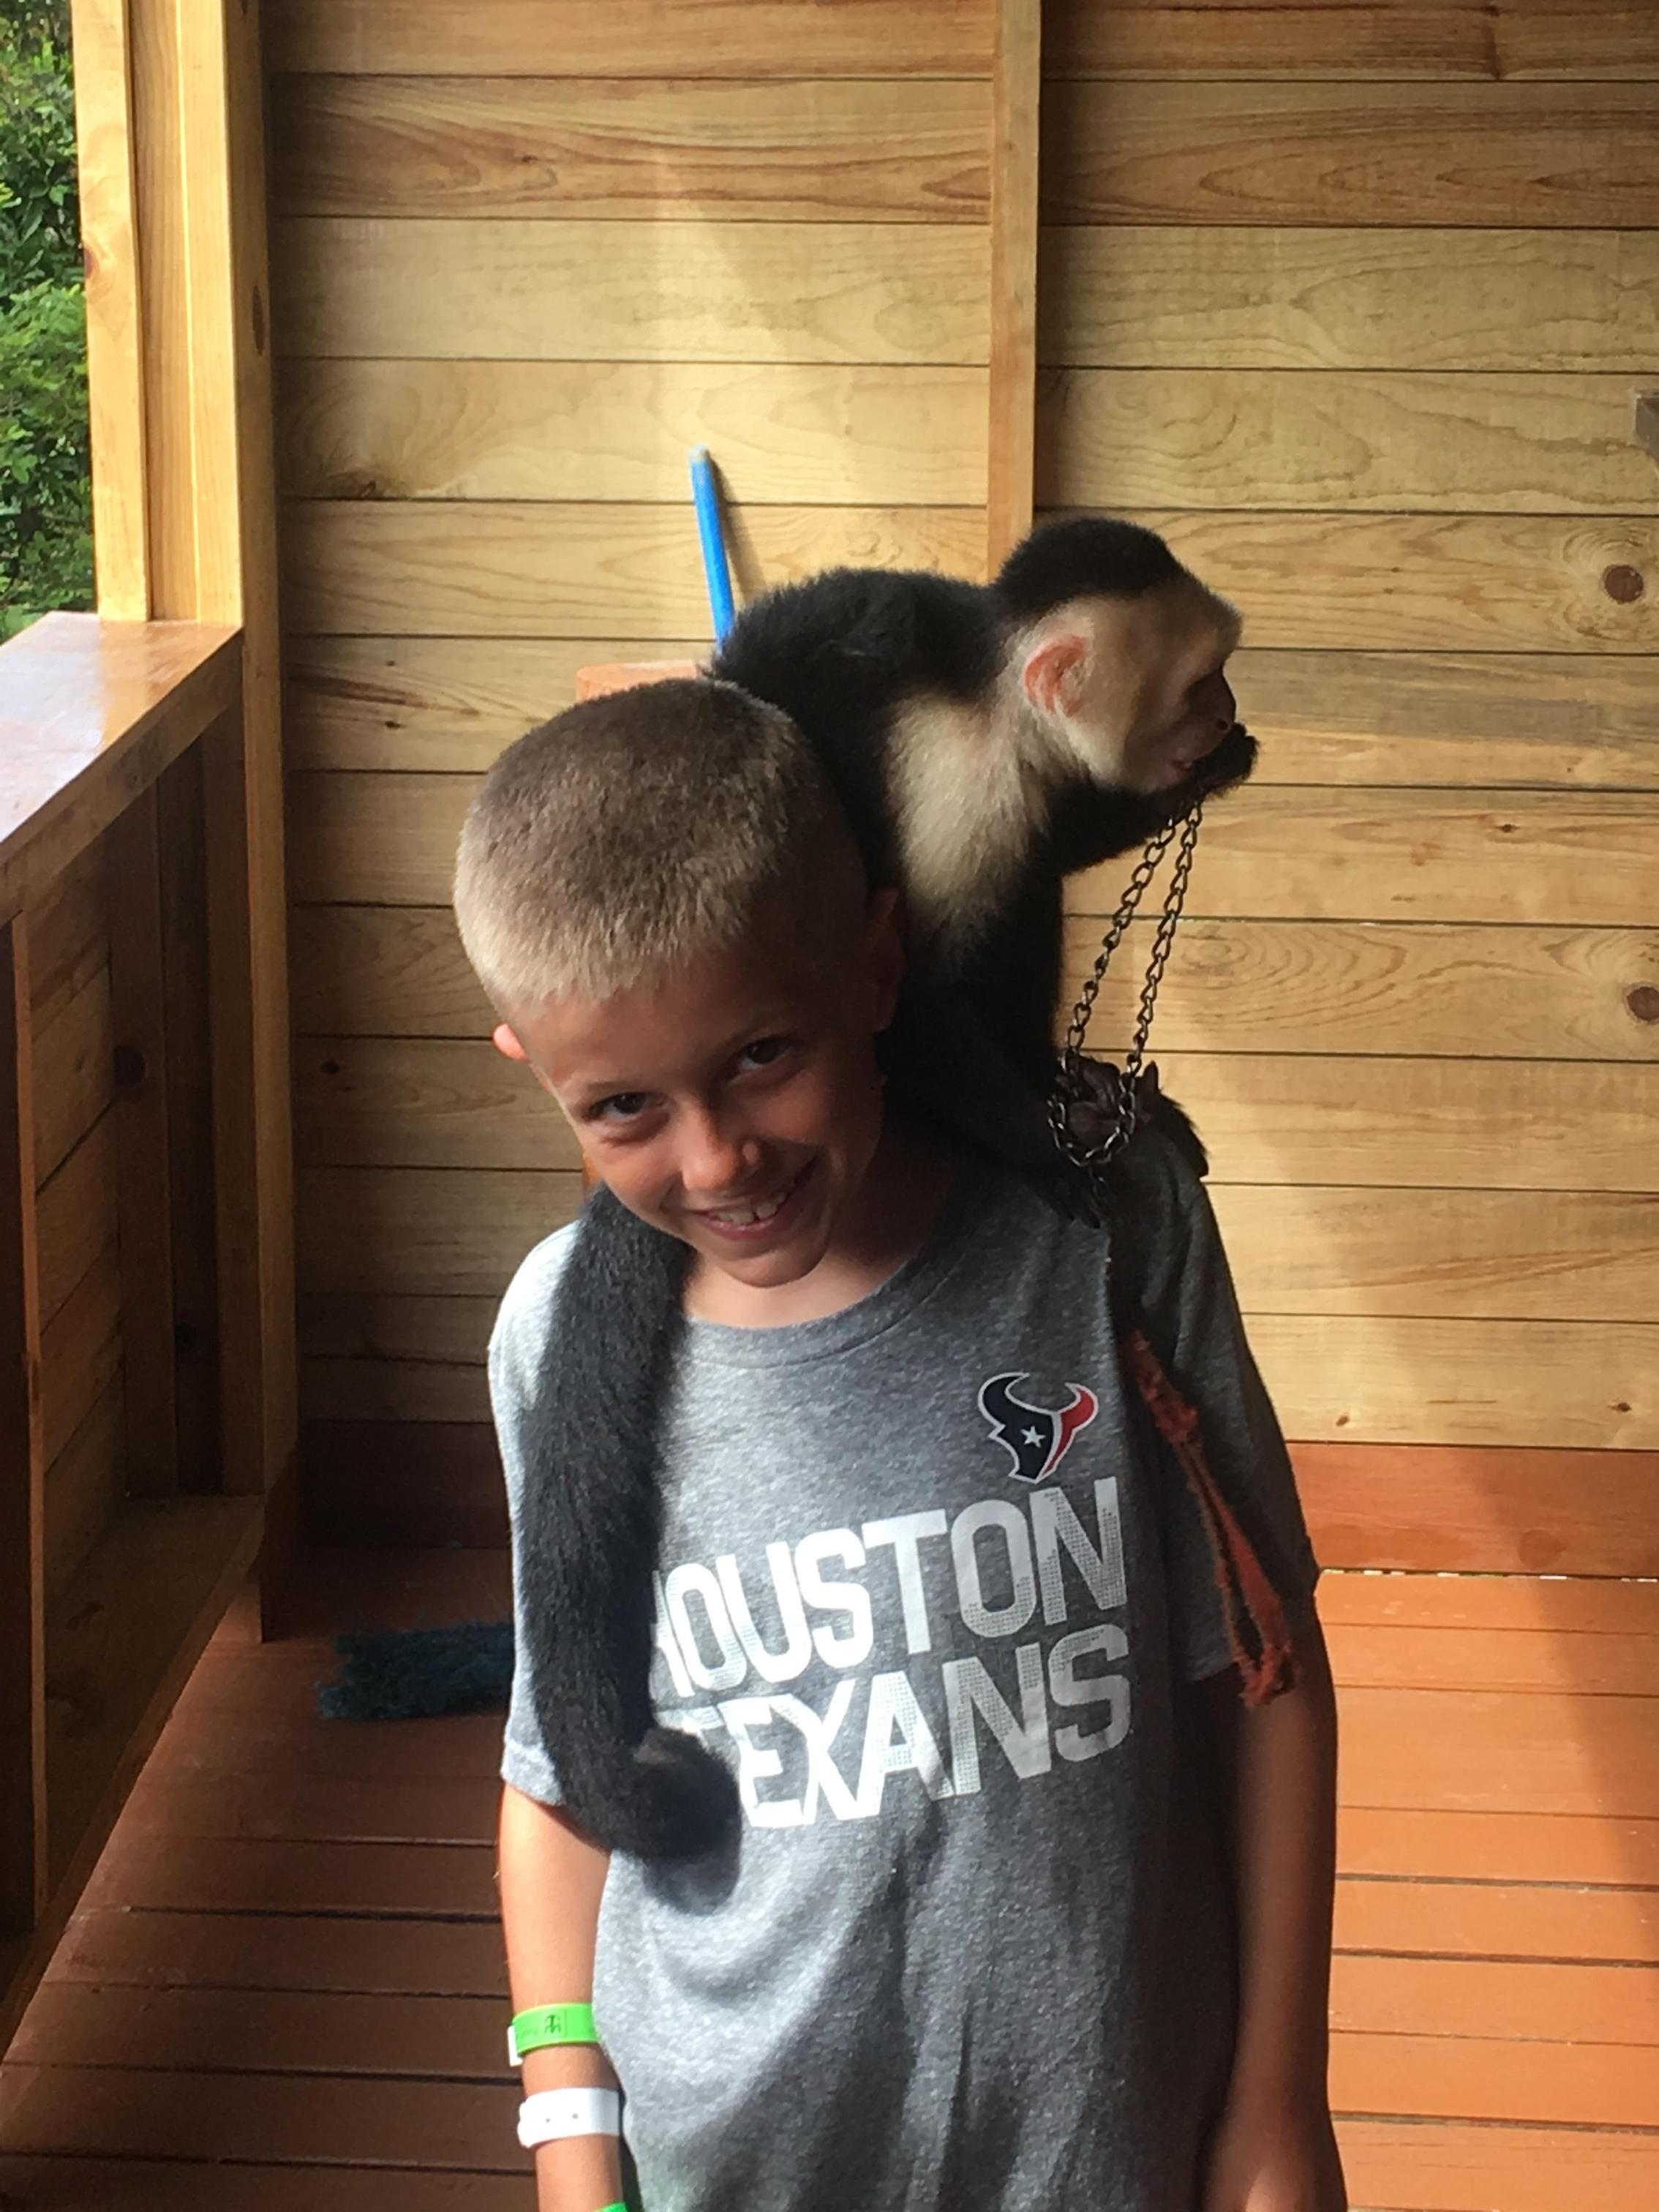 Home Dianna Apfel Creekview Elementary School Mom N Bab Short Shirt White Red Stripe Tyce Made A Monkey Friend In Roatan